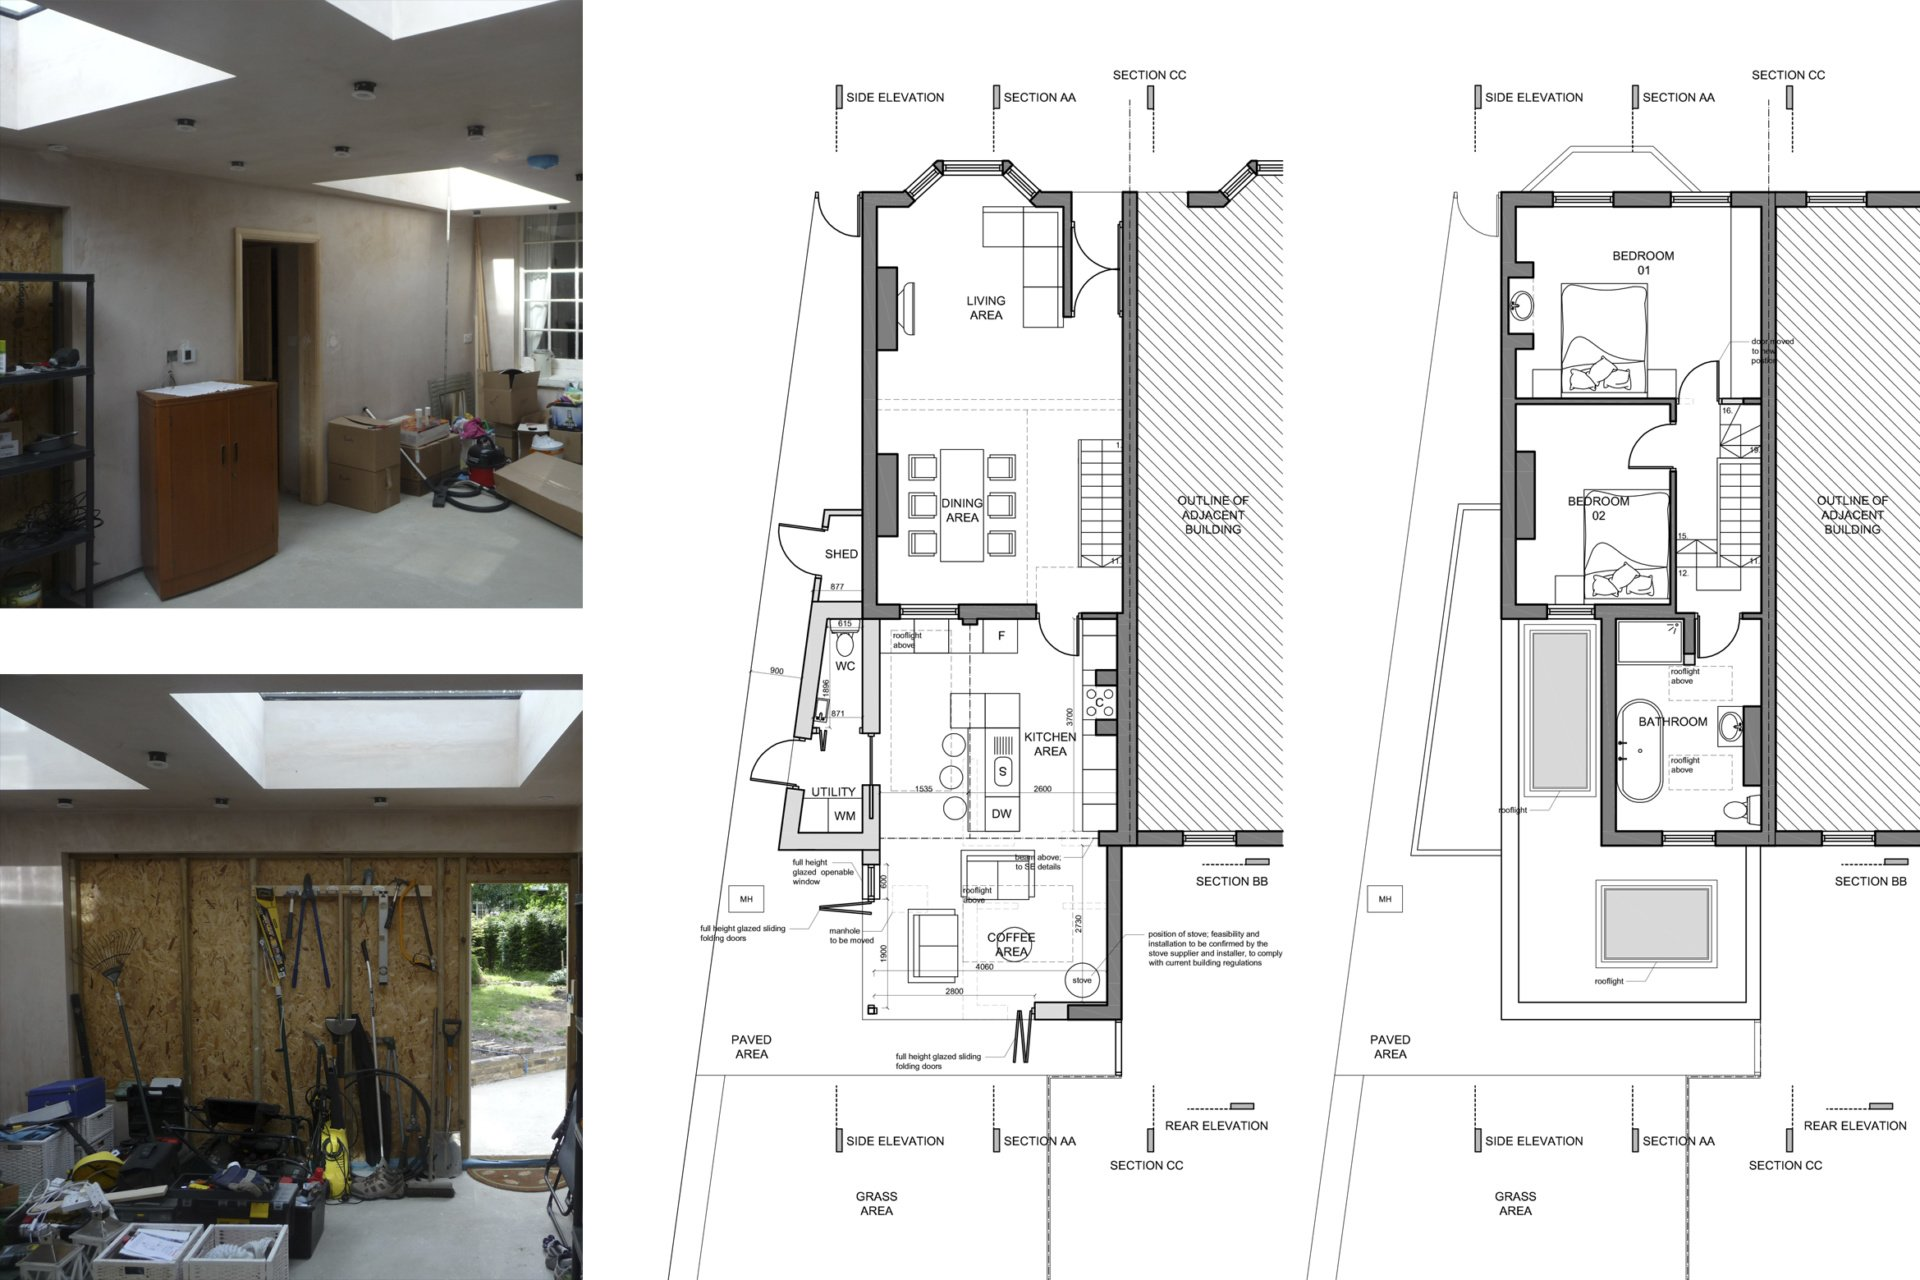 Enfield Chase EN2 Rear house extension refurbishment Floor plans Enfield Chase EN2 Rear house extension and refurbishment